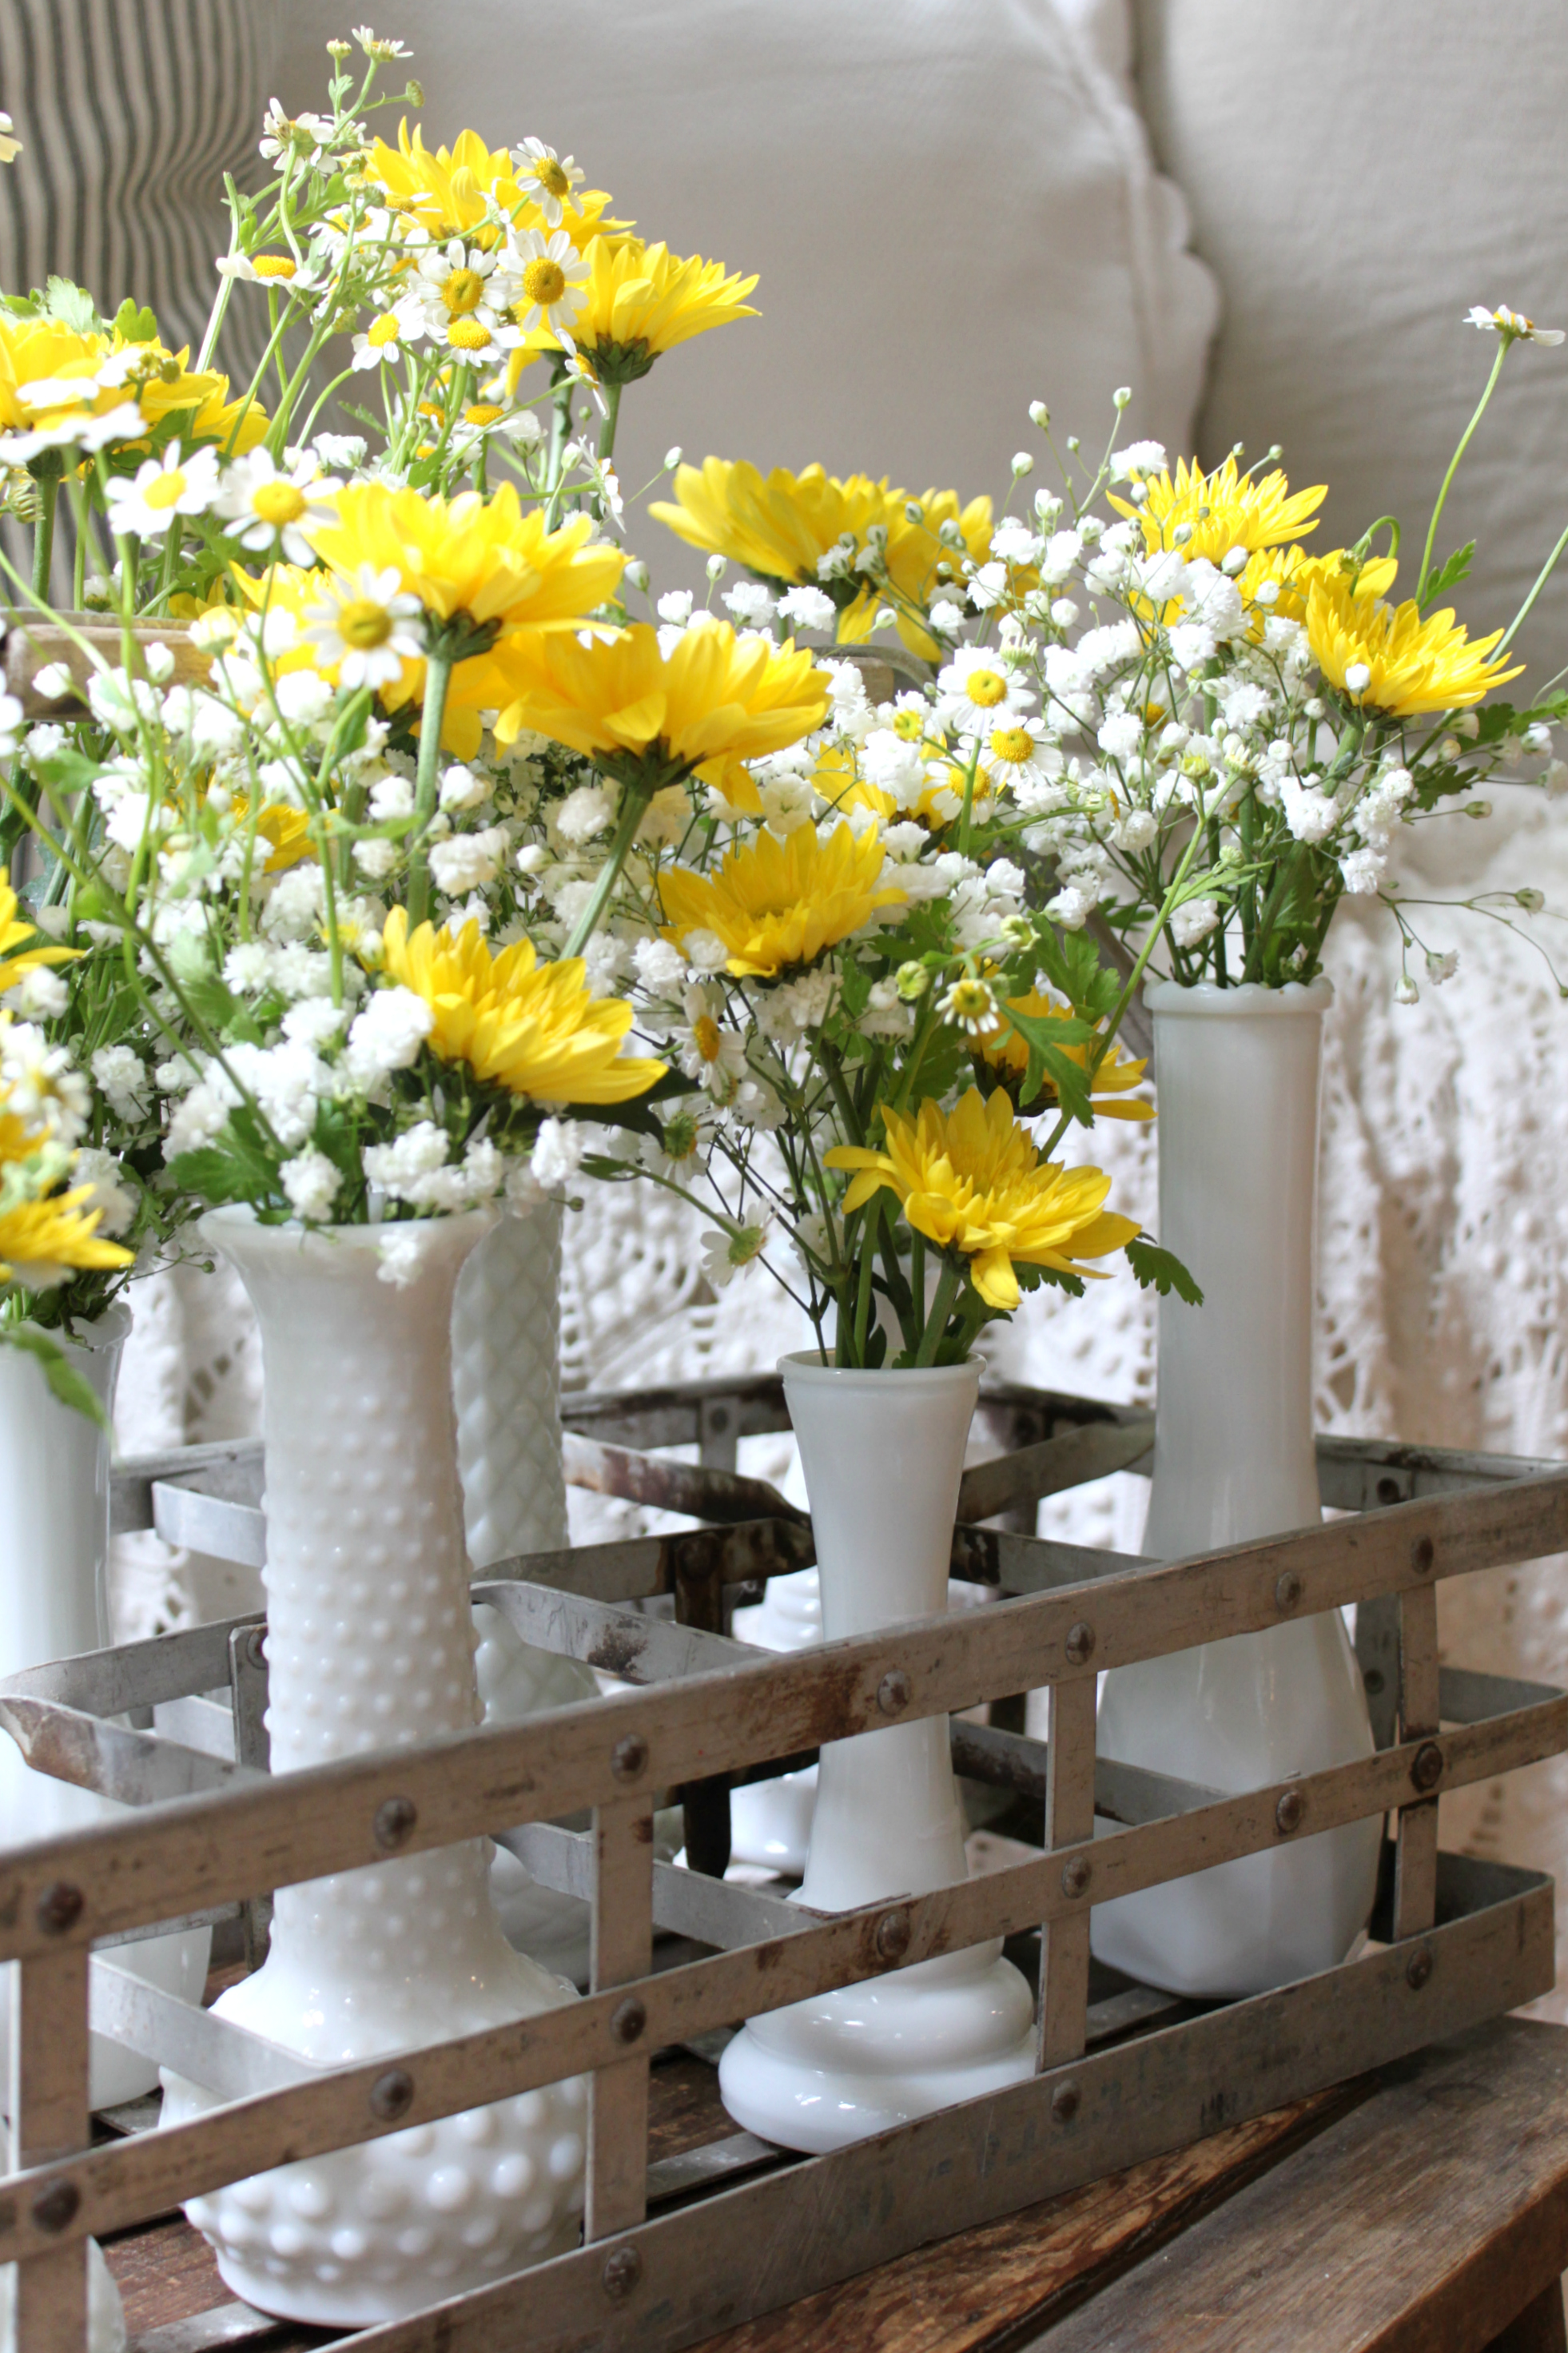 A Combination Of Daisies And Baby S Breath In Shades Yellow White Adds Hy Pop To The Bright Milk Gl